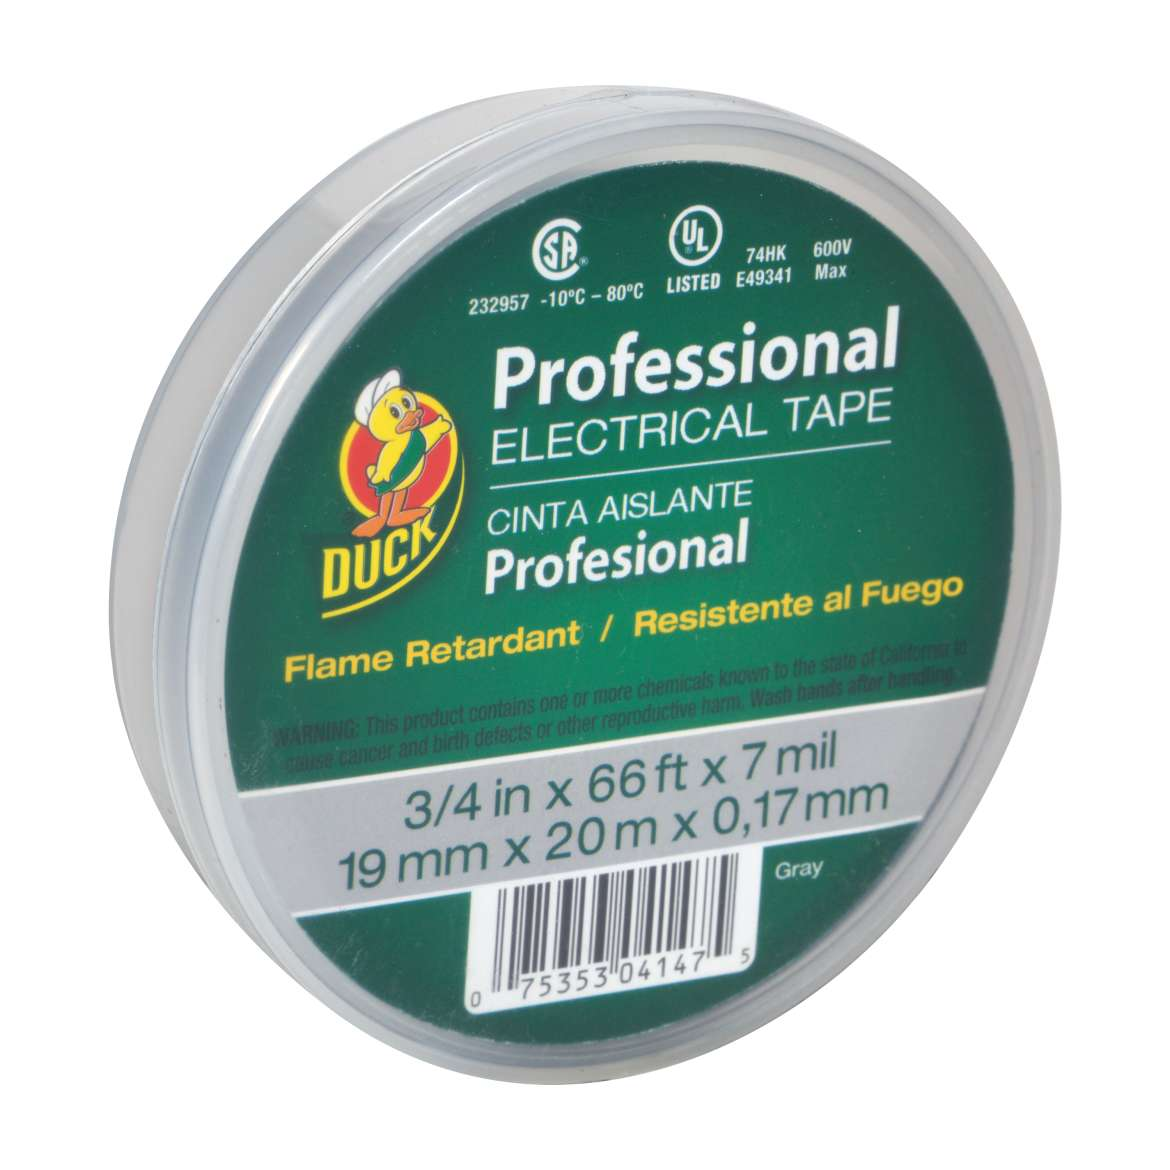 Duck® Brand Professional Electrical Tape Canister Pack - Grey, .75 in. x 66 ft. x 7 mil. Image